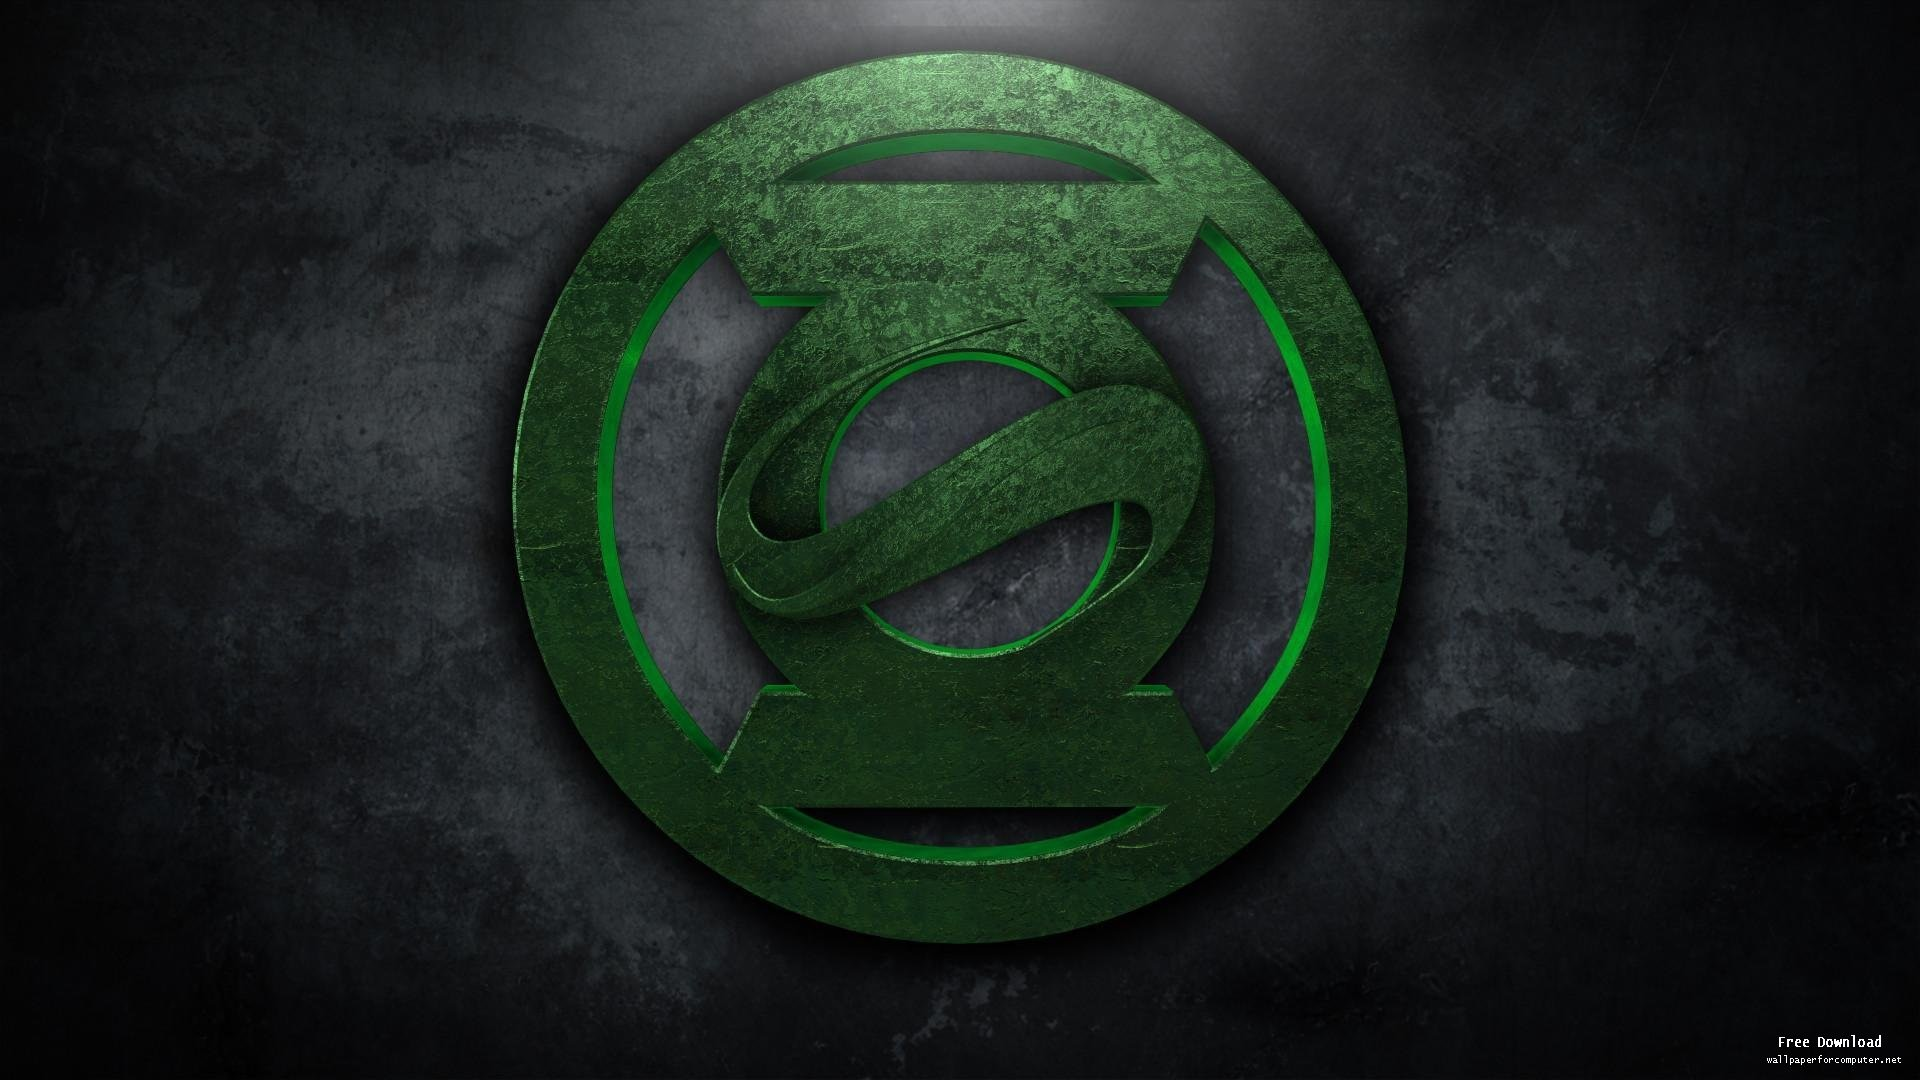 Green Lantern logo Wallpapers for Computer 218 – HD Wallpapers Site